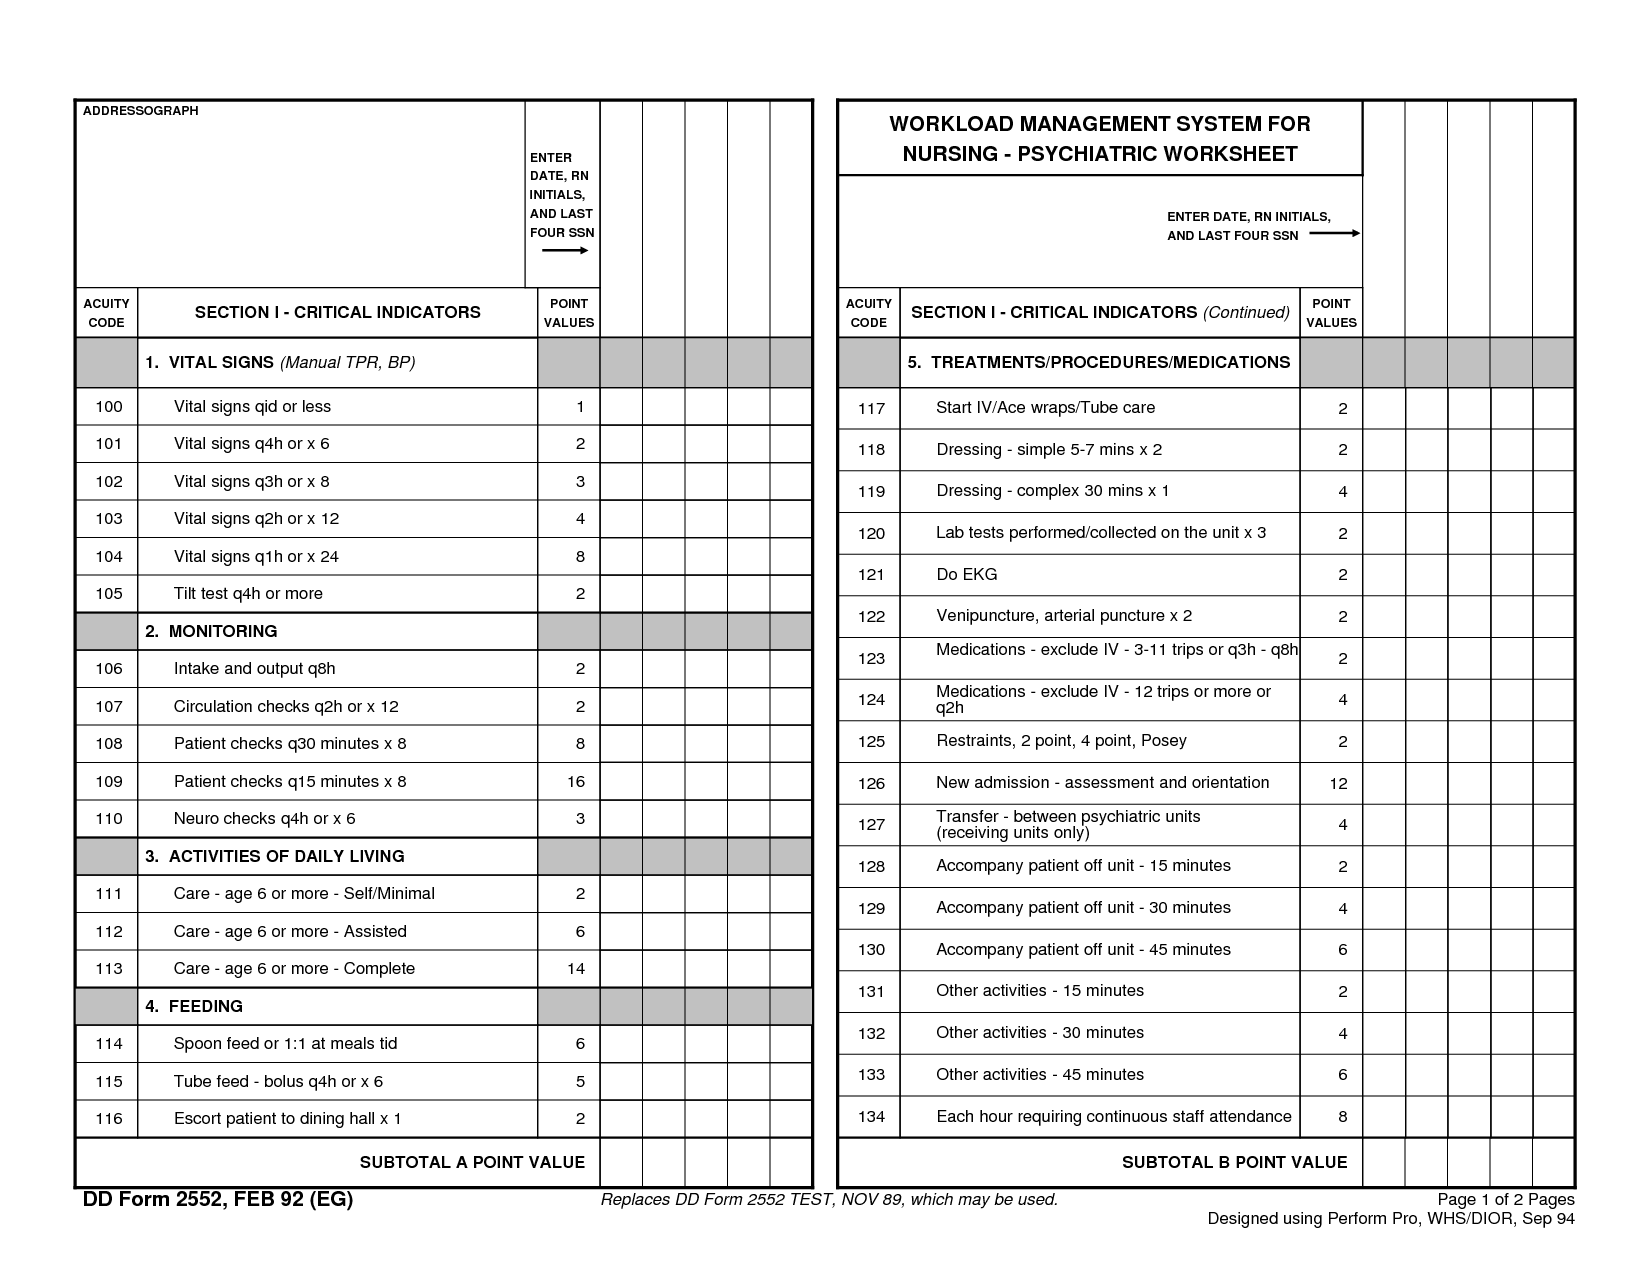 worksheet Nursing Worksheets workload assessment template dd2552 management system for nursing psychiatric worksheet